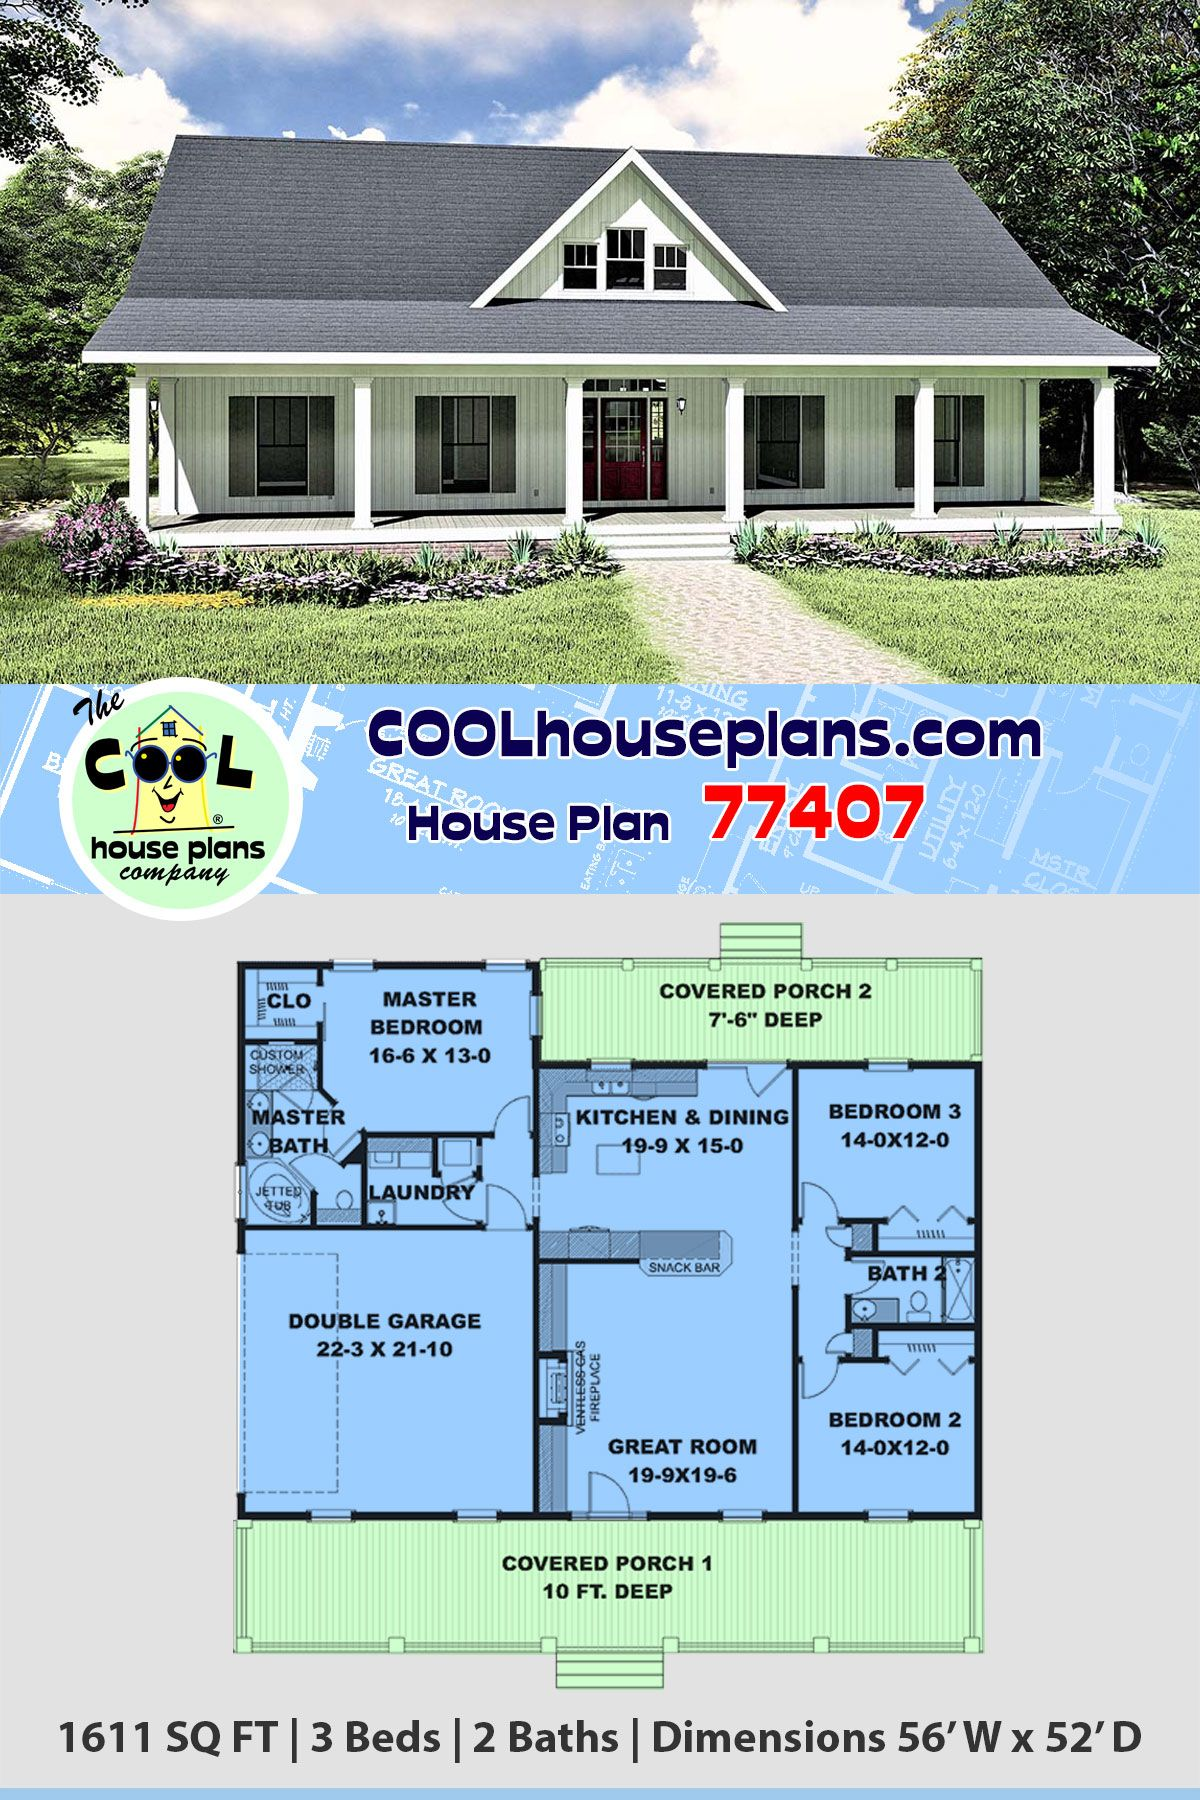 Southern Style House Plan 77407 With 3 Bed 2 Bath 2 Car Garage Ranch House Plans House Plans Country House Plans